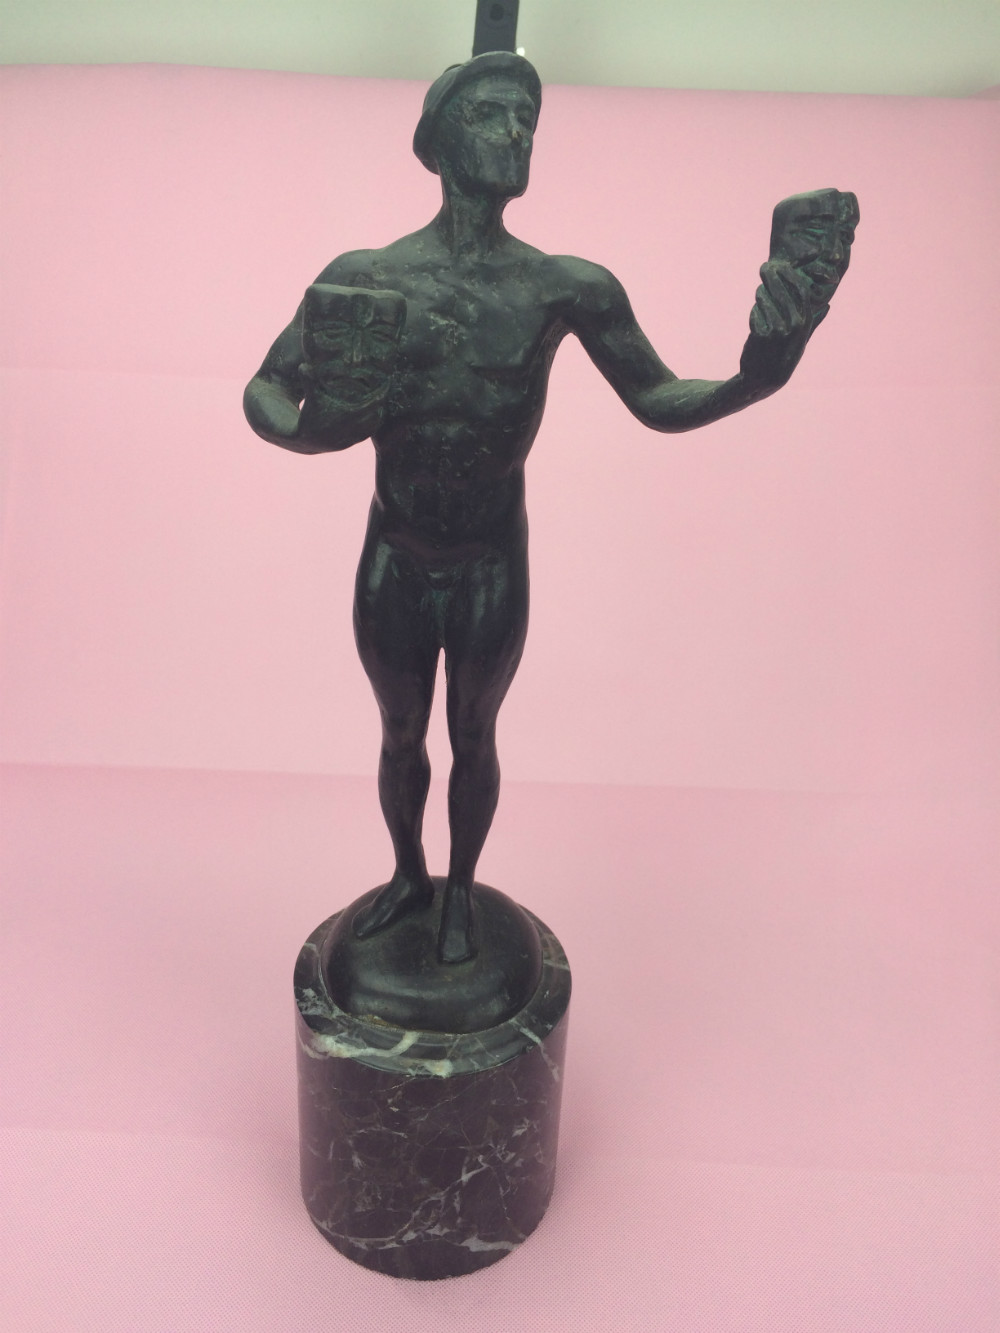 Brass Screen Actors Guild Award, Replica Screen Actors Guild Awards, premio SAG